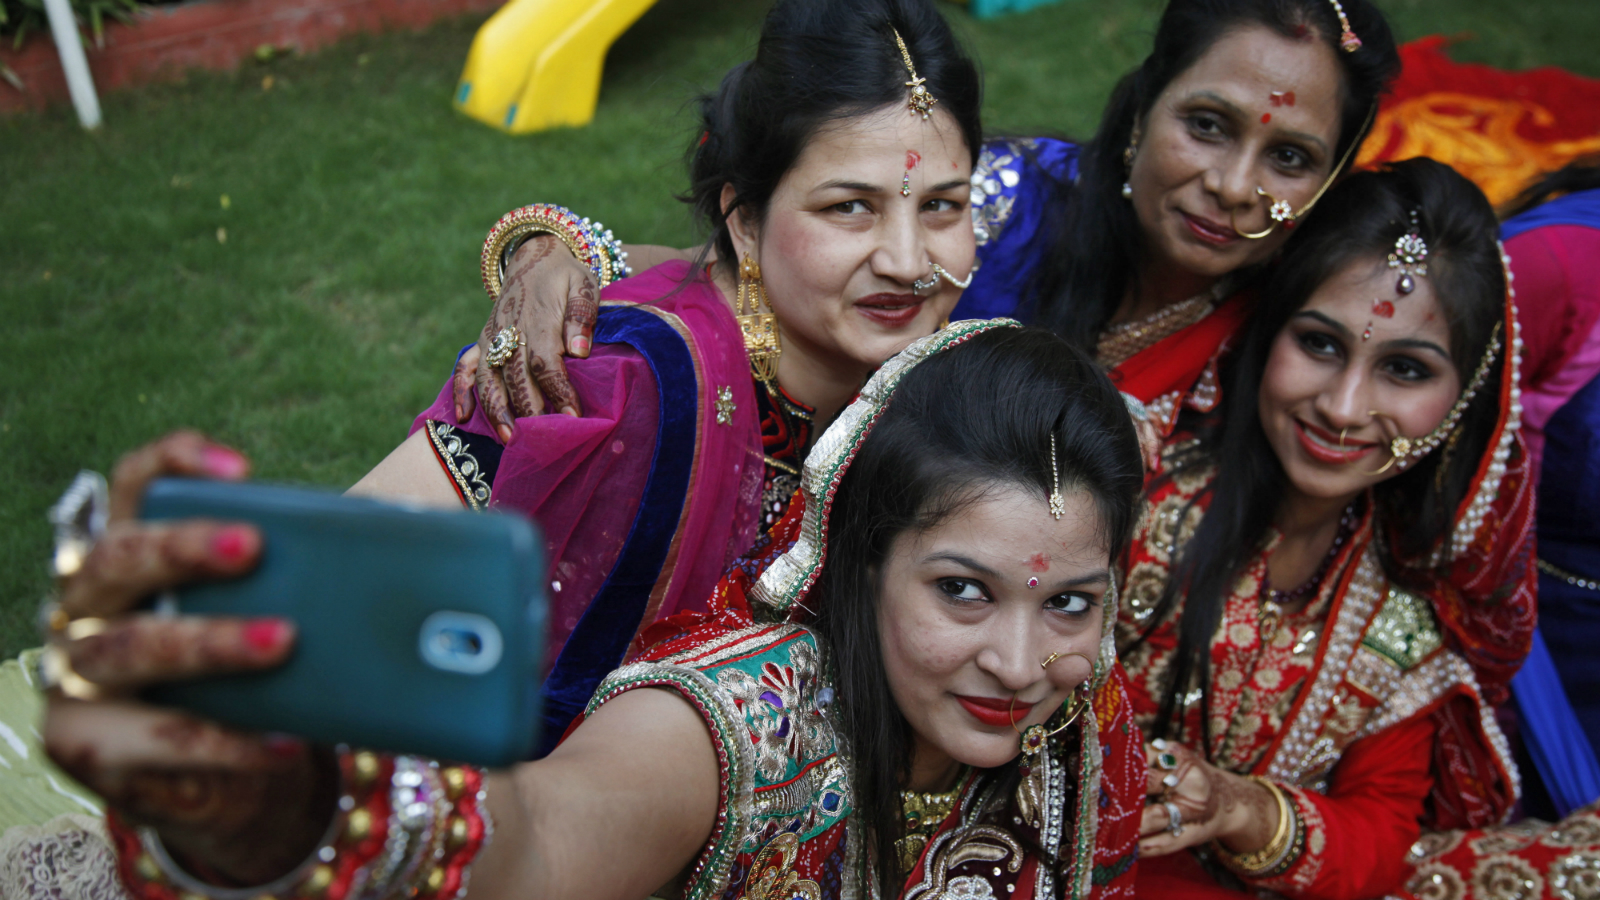 Indian Hindu married women take a selfie from a mobile phone after performing rituals on Karva Chauth festival in Ahmadabad, India, Friday, Oct. 30, 2015. Married women decorate their hands with henna on Karva Chauth festival and observe a fast to pray for the longevity and well being of their husbands.